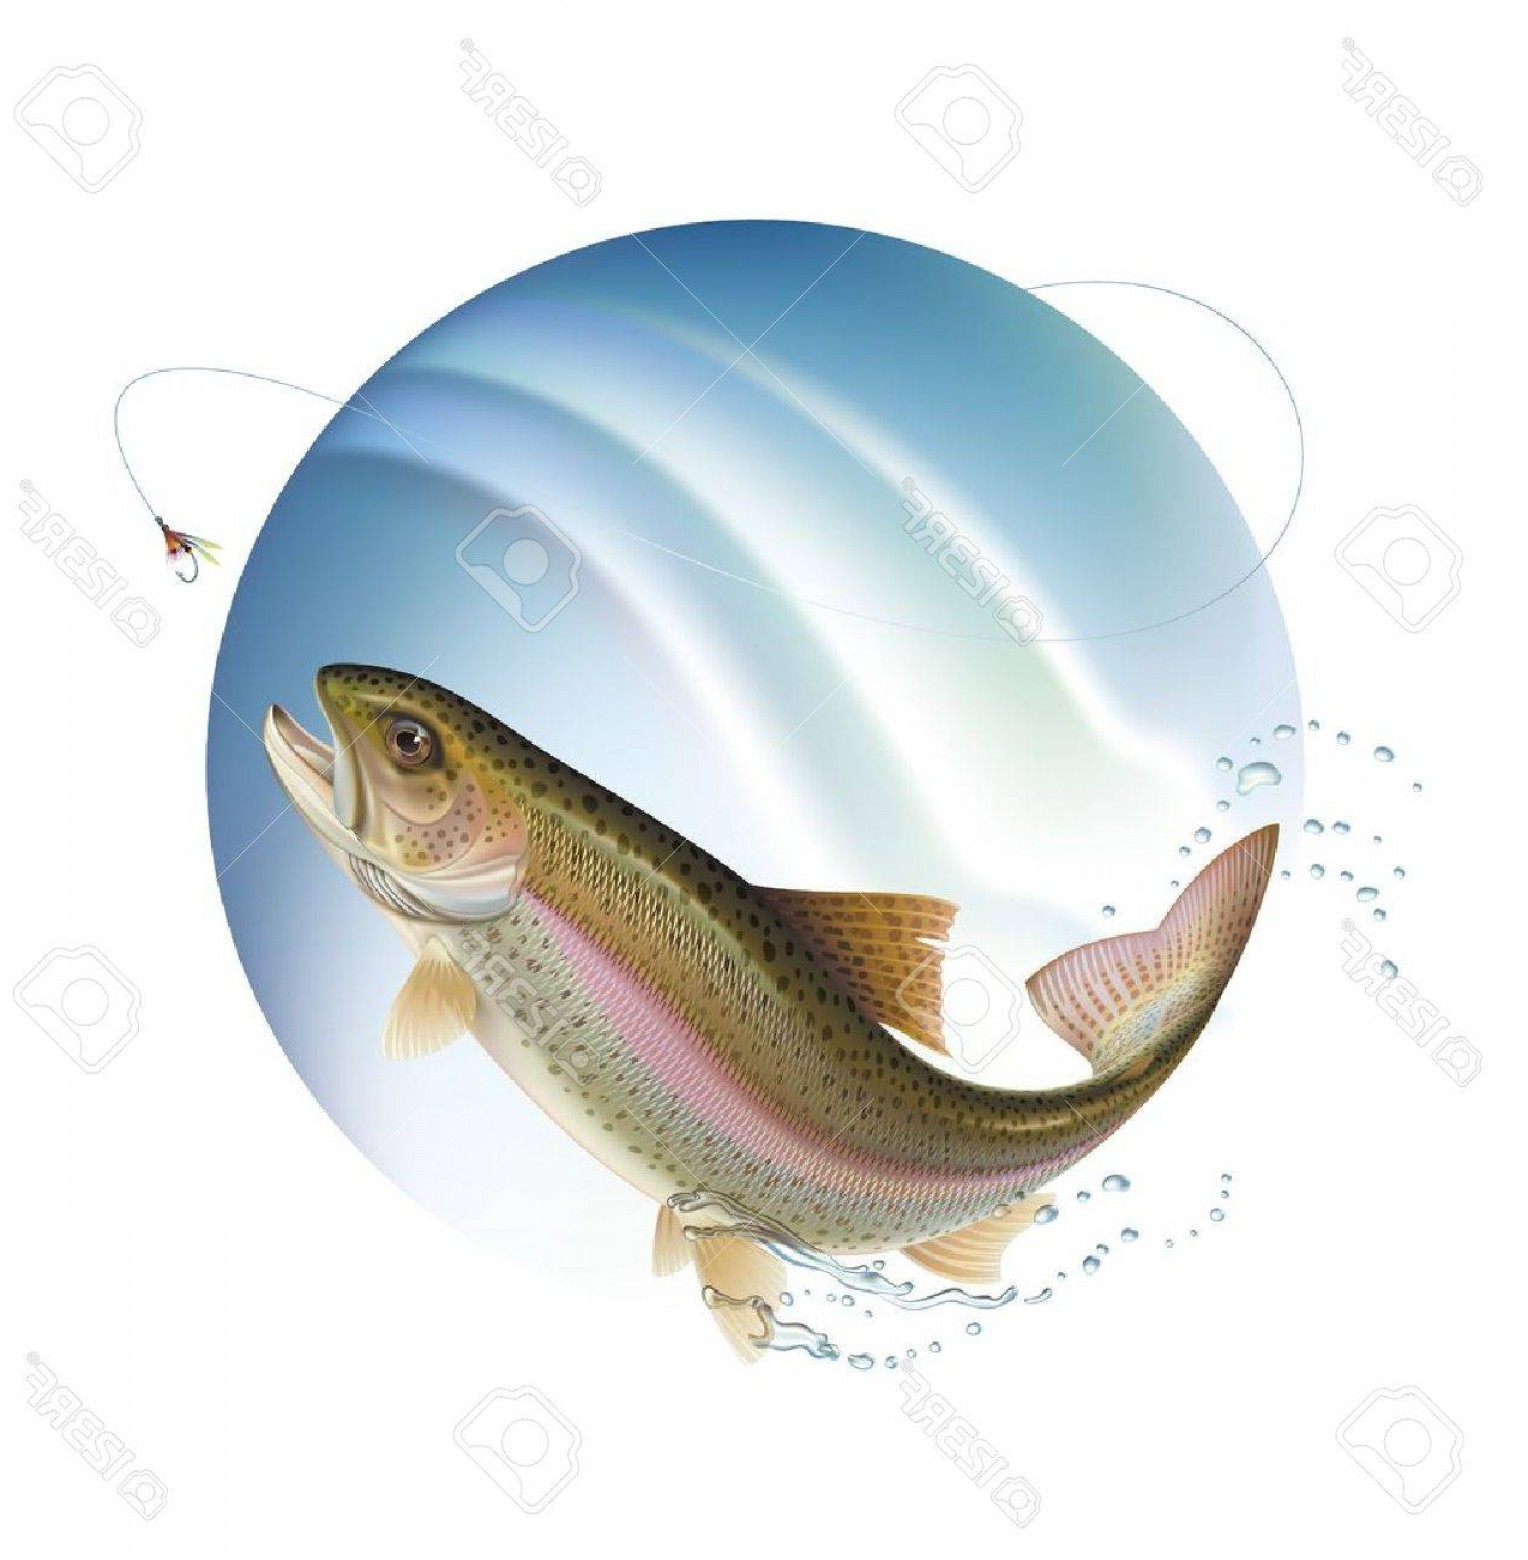 Speckled Trout Vector: Photorainbow Trout Is Jumping For A Bait With Water Sprays Around Vector Illustration